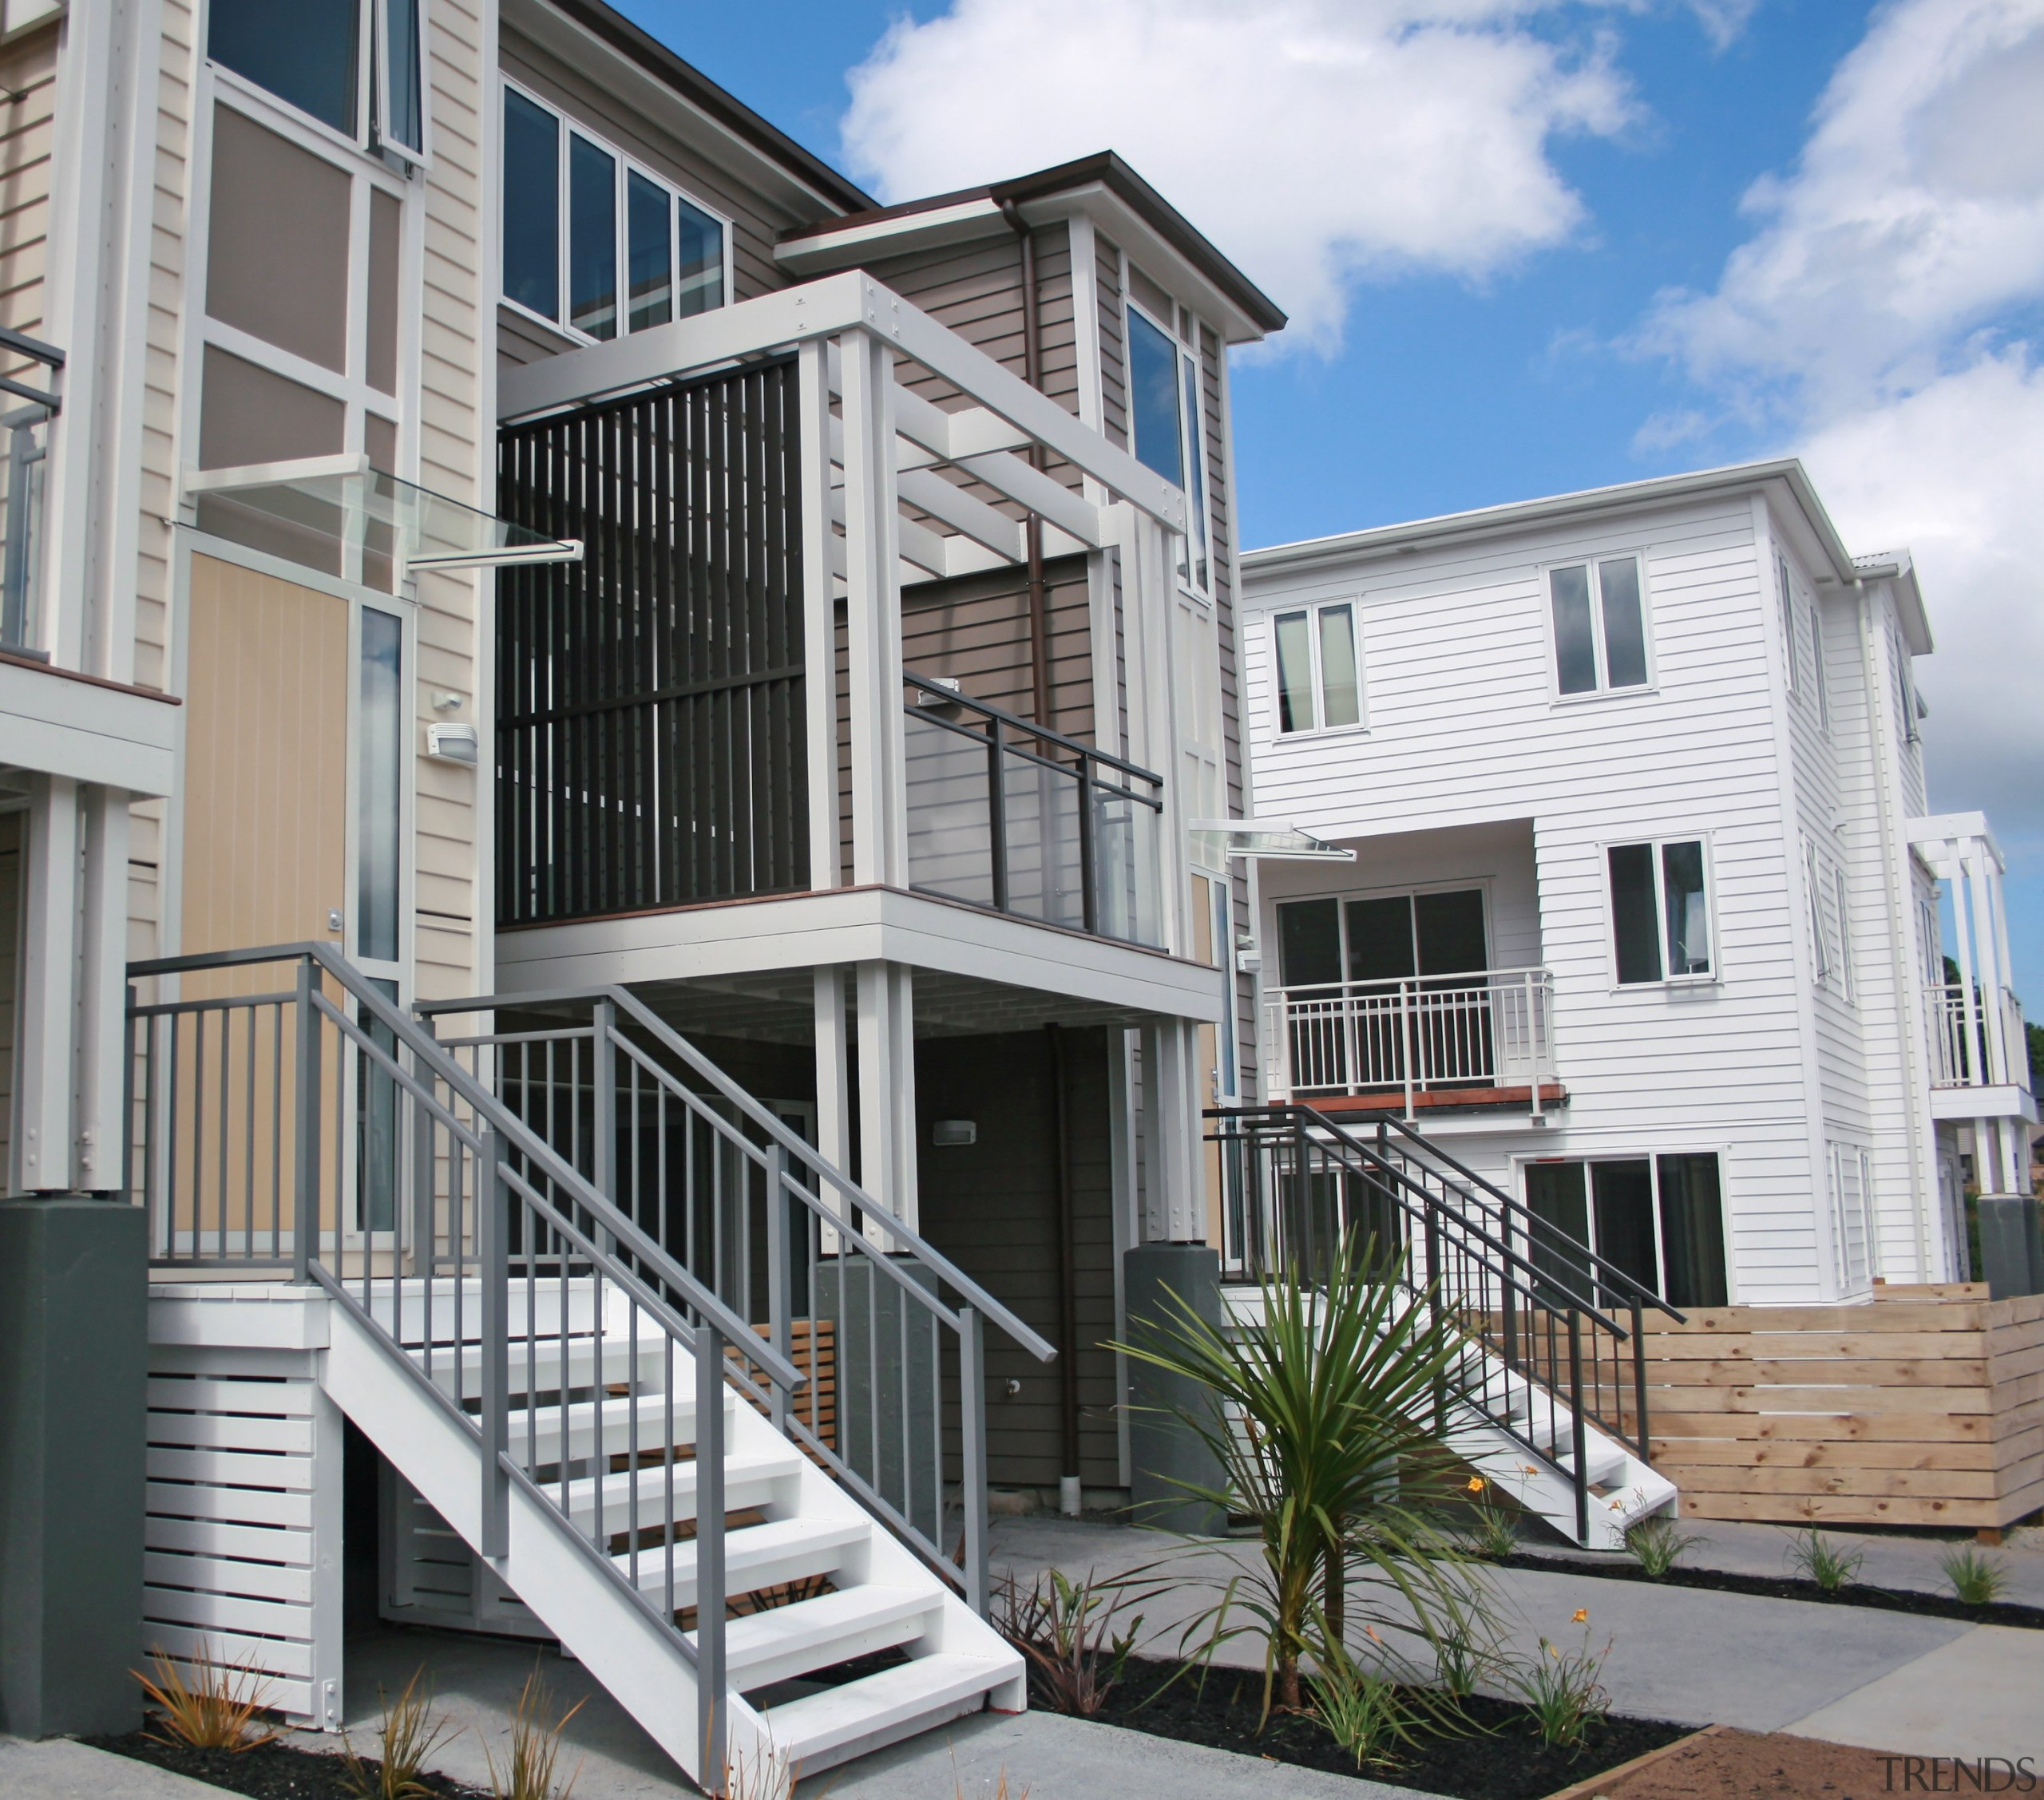 The exterior fittings installed by HomePlus are all apartment, balcony, building, condominium, deck, elevation, facade, handrail, home, house, mixed use, neighbourhood, property, real estate, residential area, siding, gray